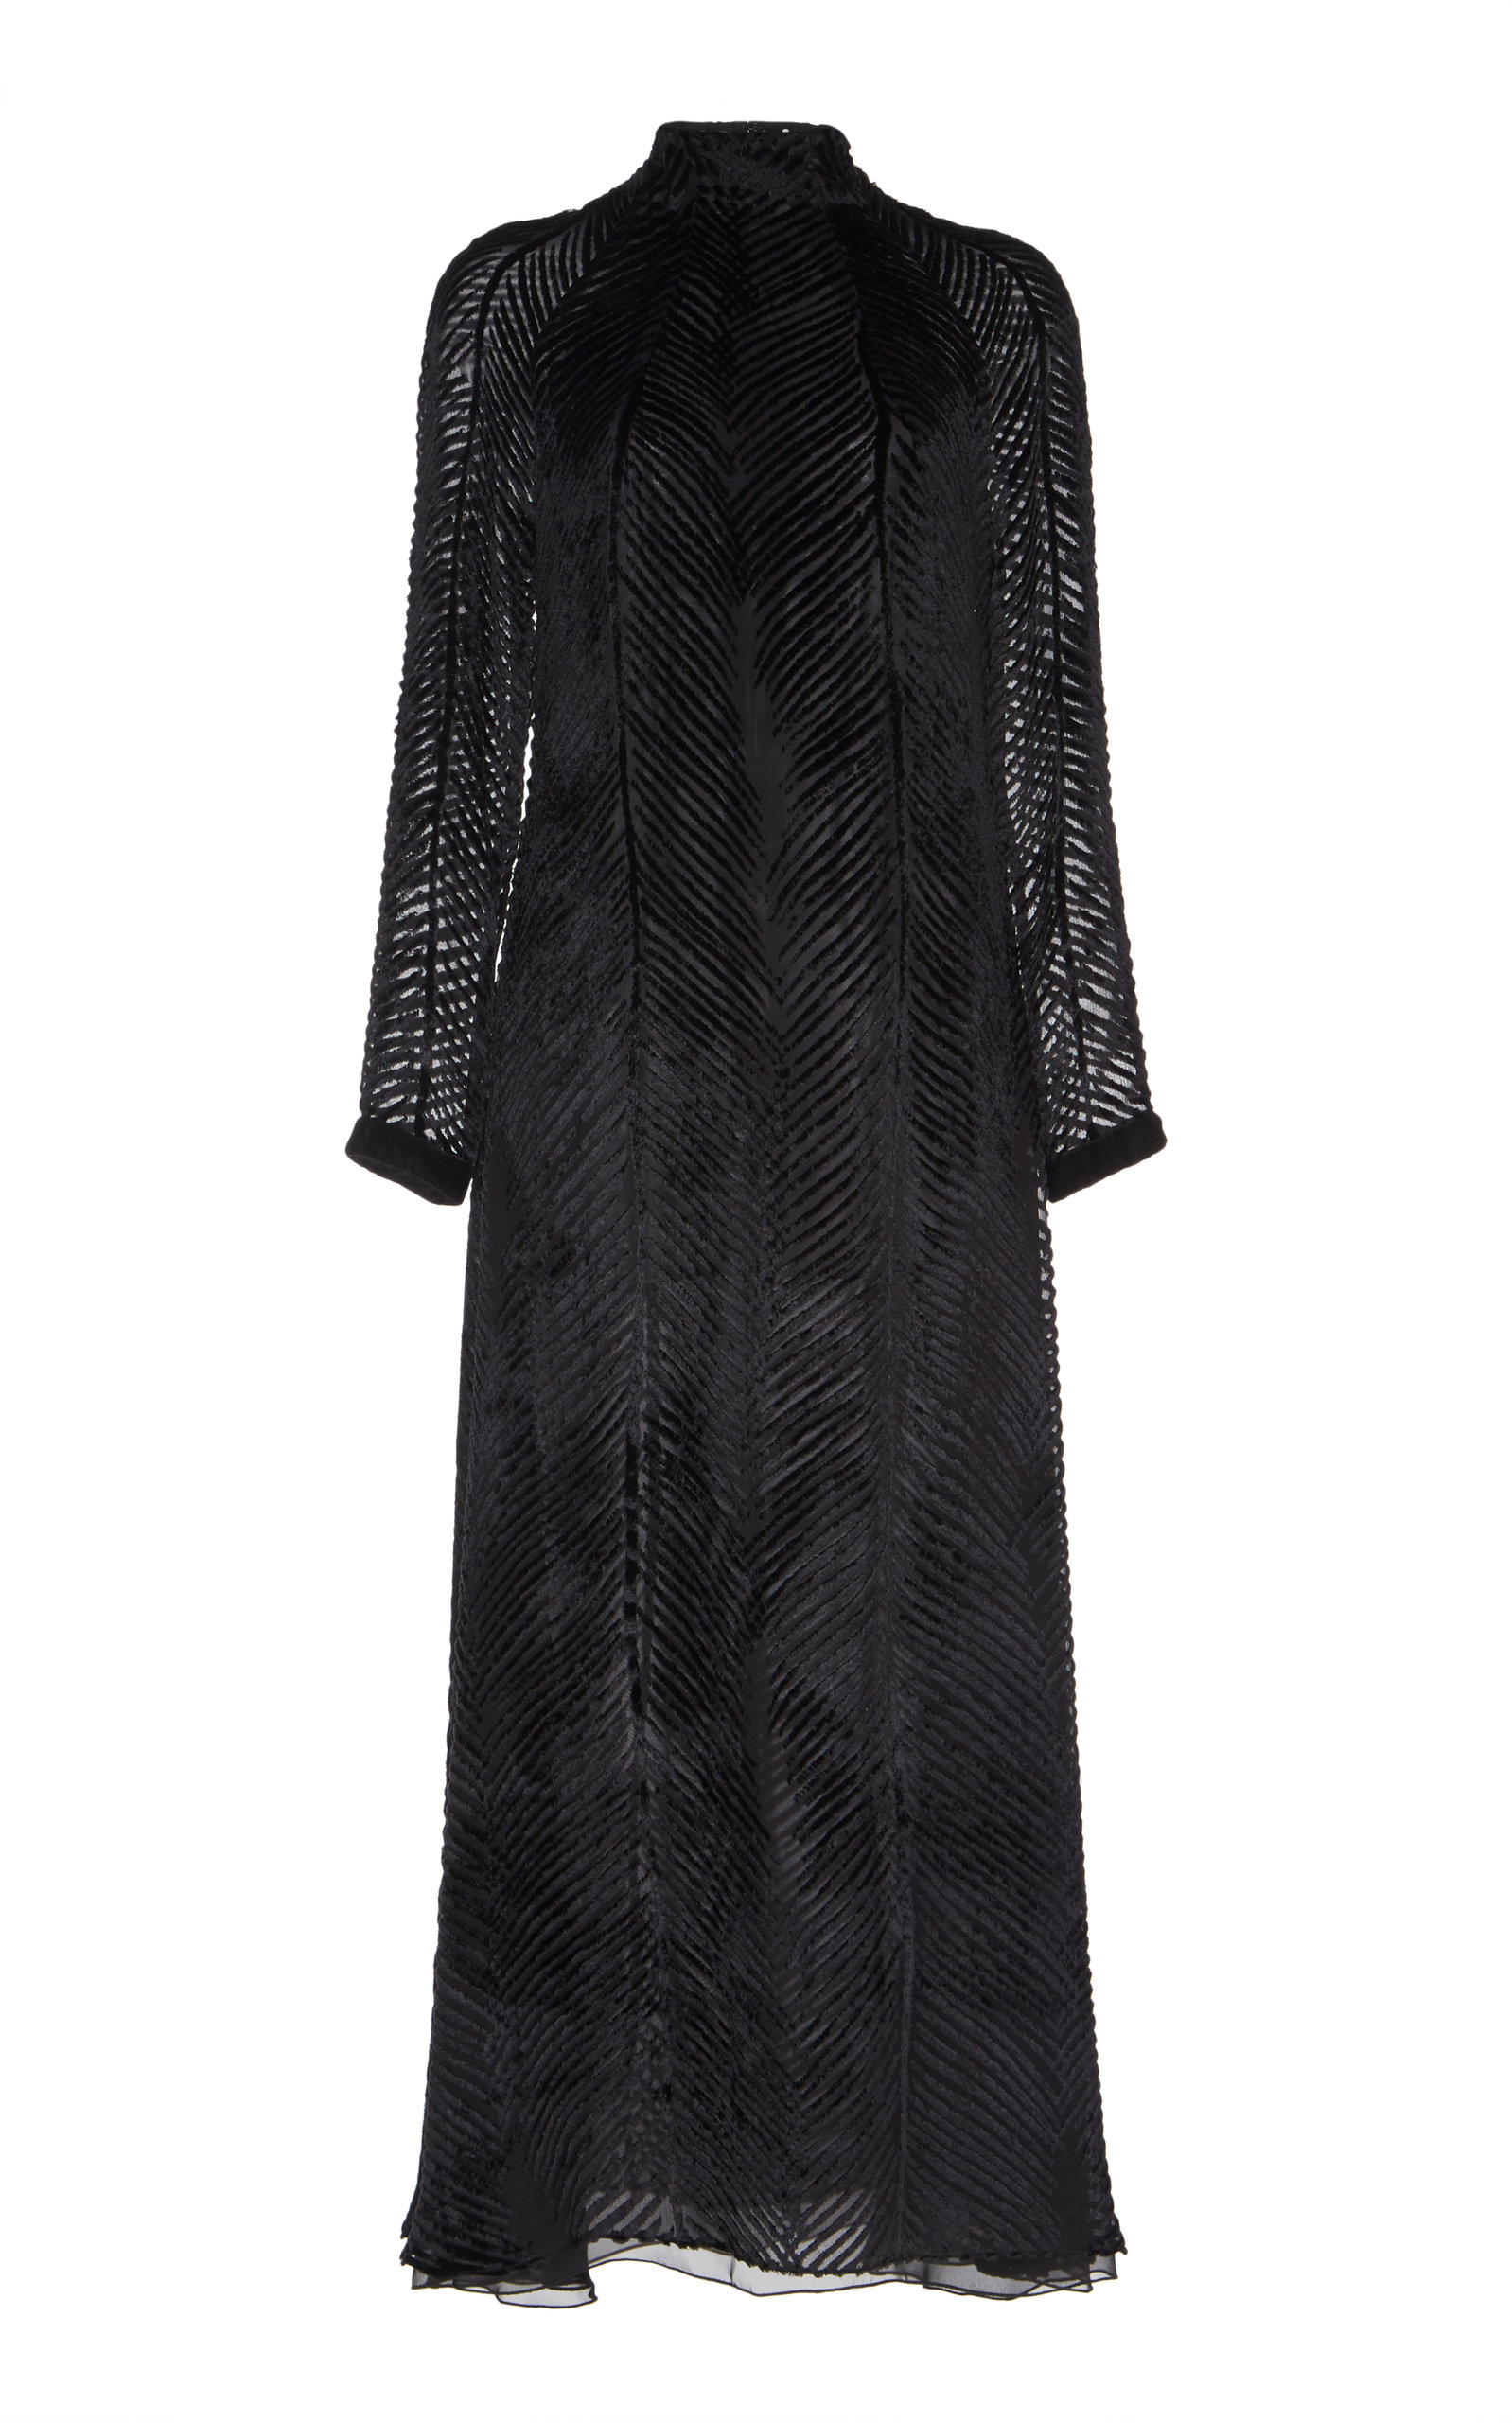 SANDRA MANSOUR Mousseline Velvet Midi Dress in Black